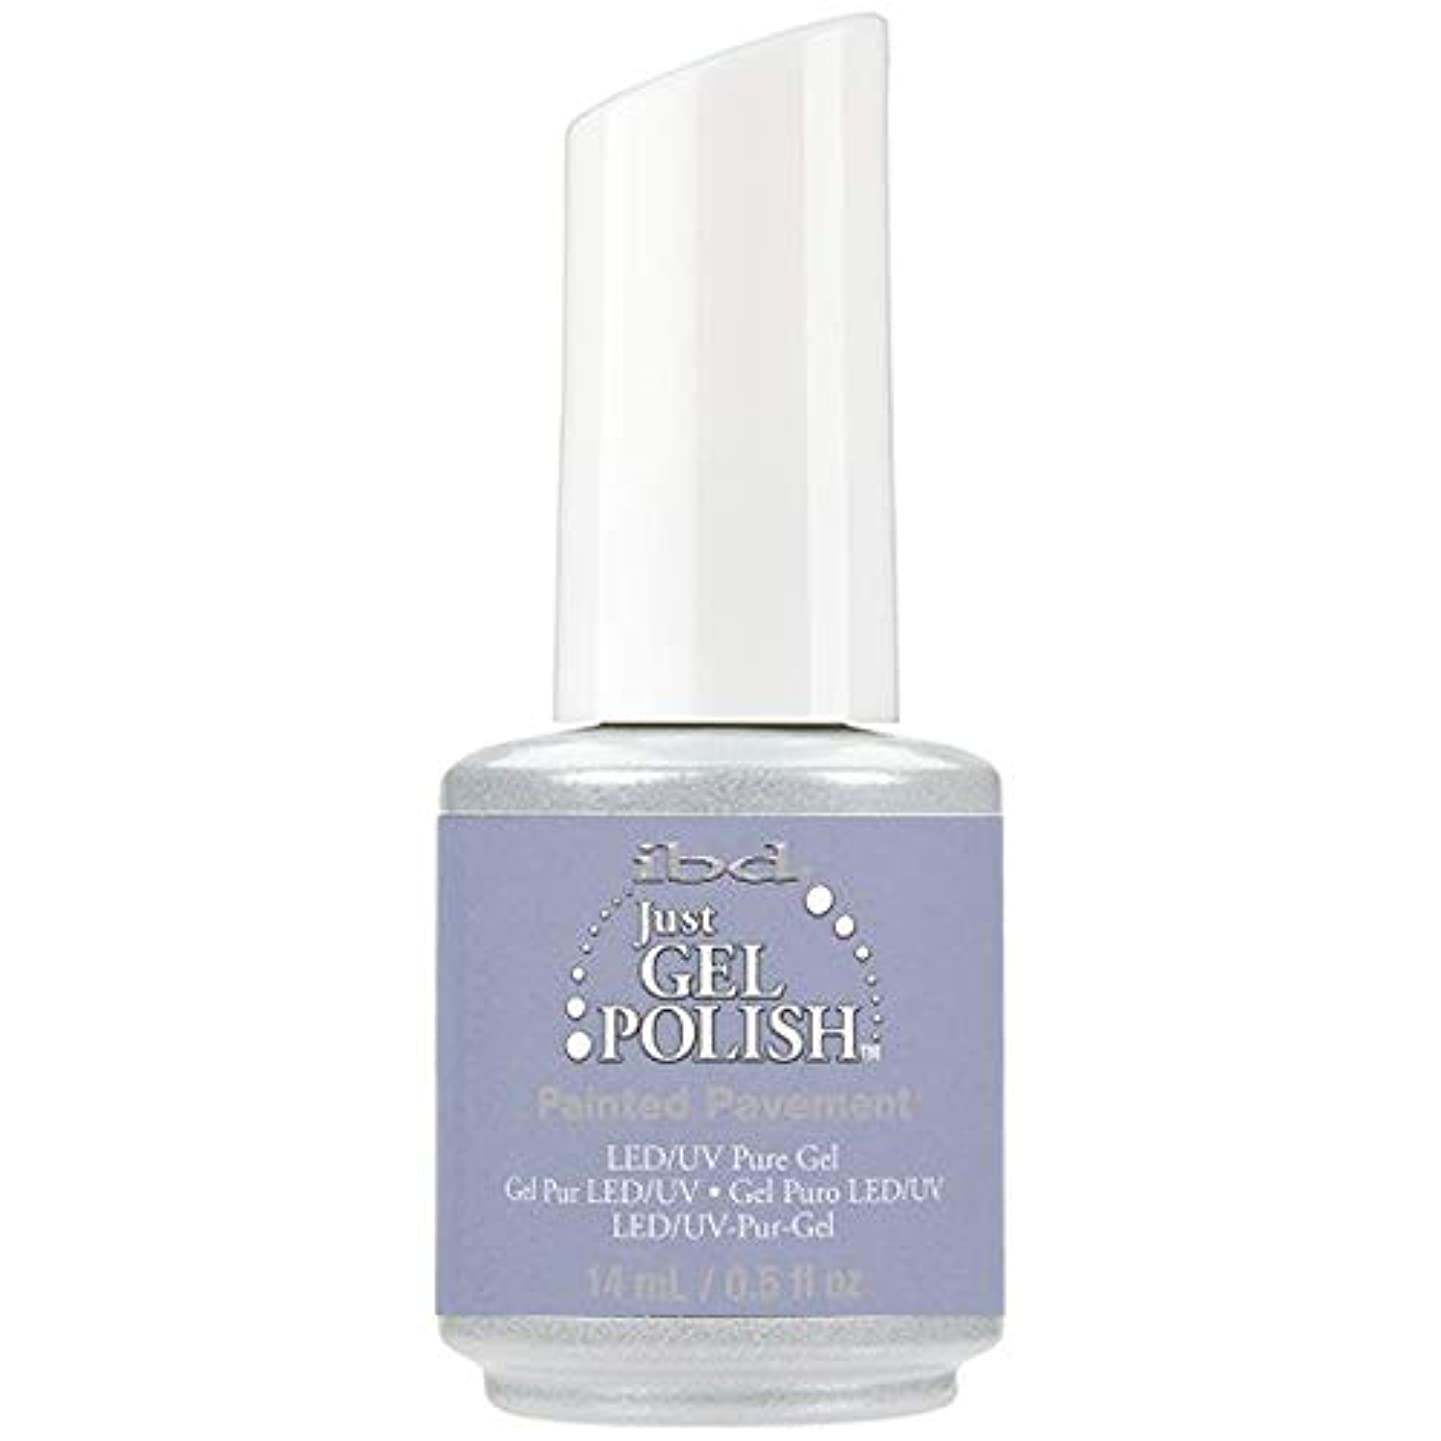 ibd Just Gel Nail Polish - Painted Pavement - 14ml / 0.5oz